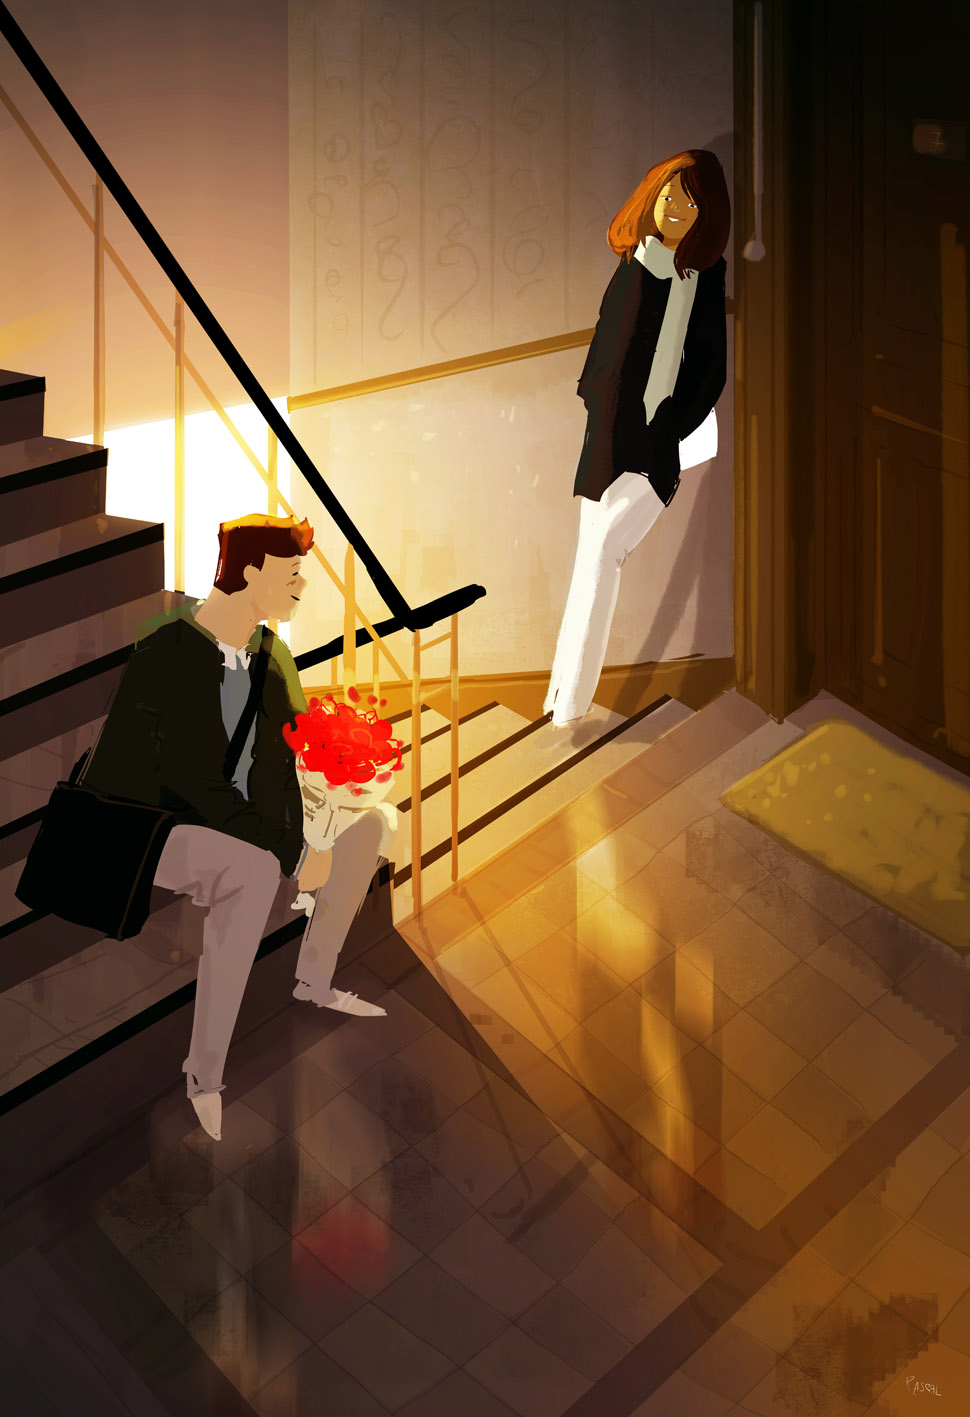 Worth the wait. by PascalCampion